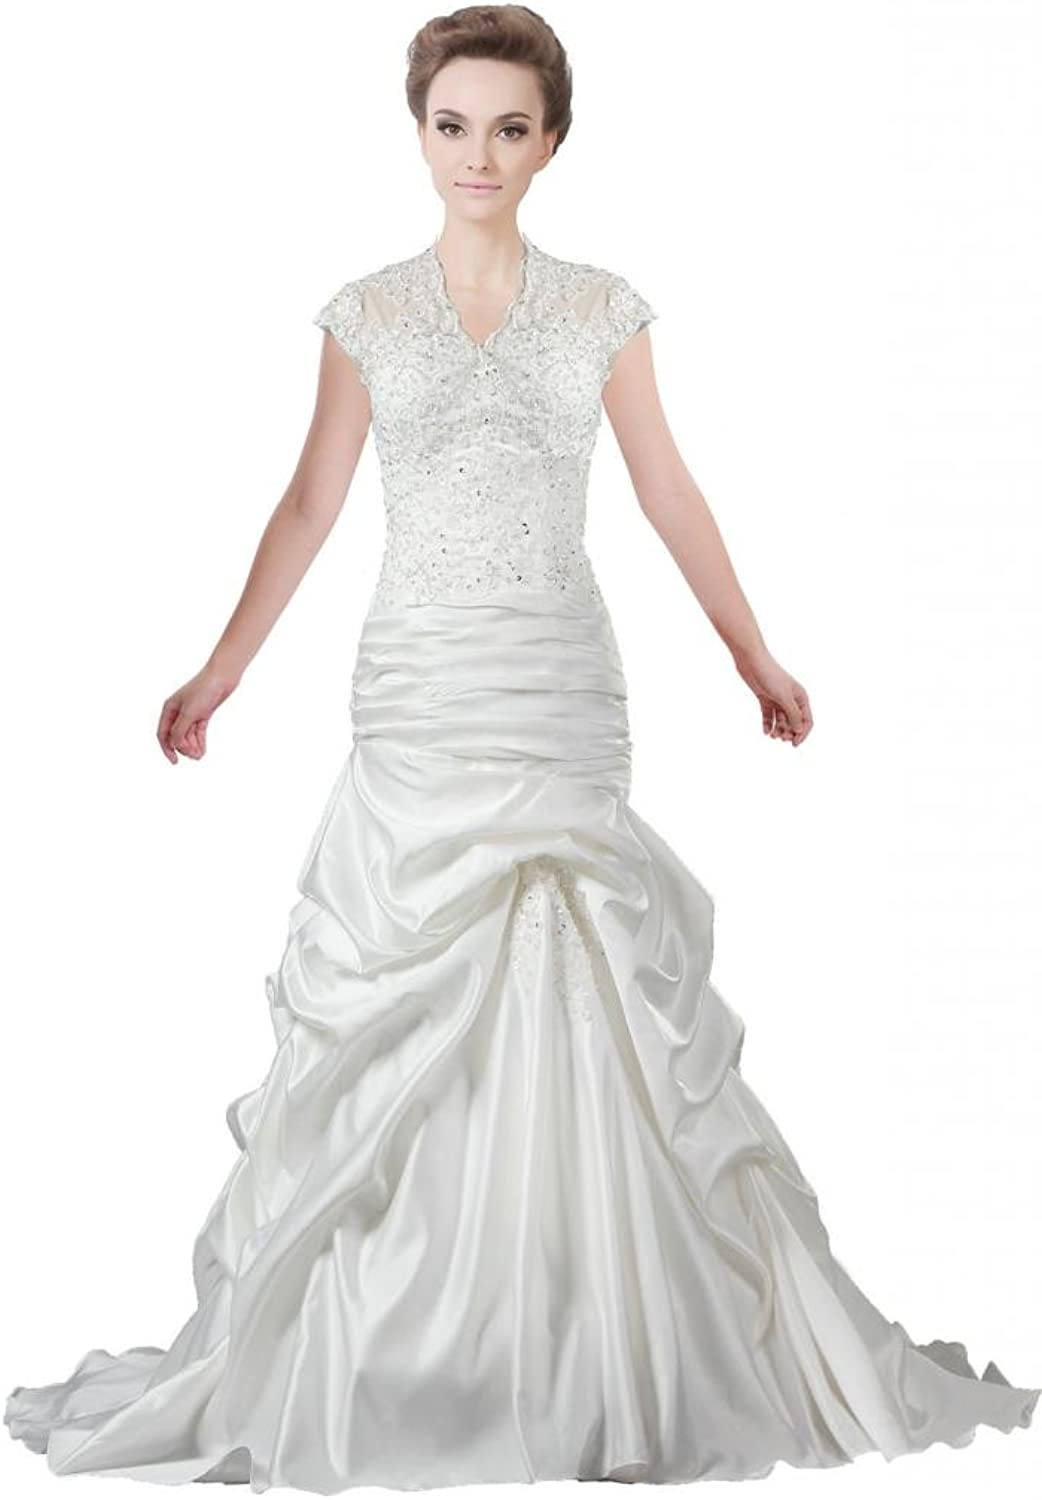 ANTS Women's Ruched Satin Lace A Line Bridal Gown Cap Sleeve